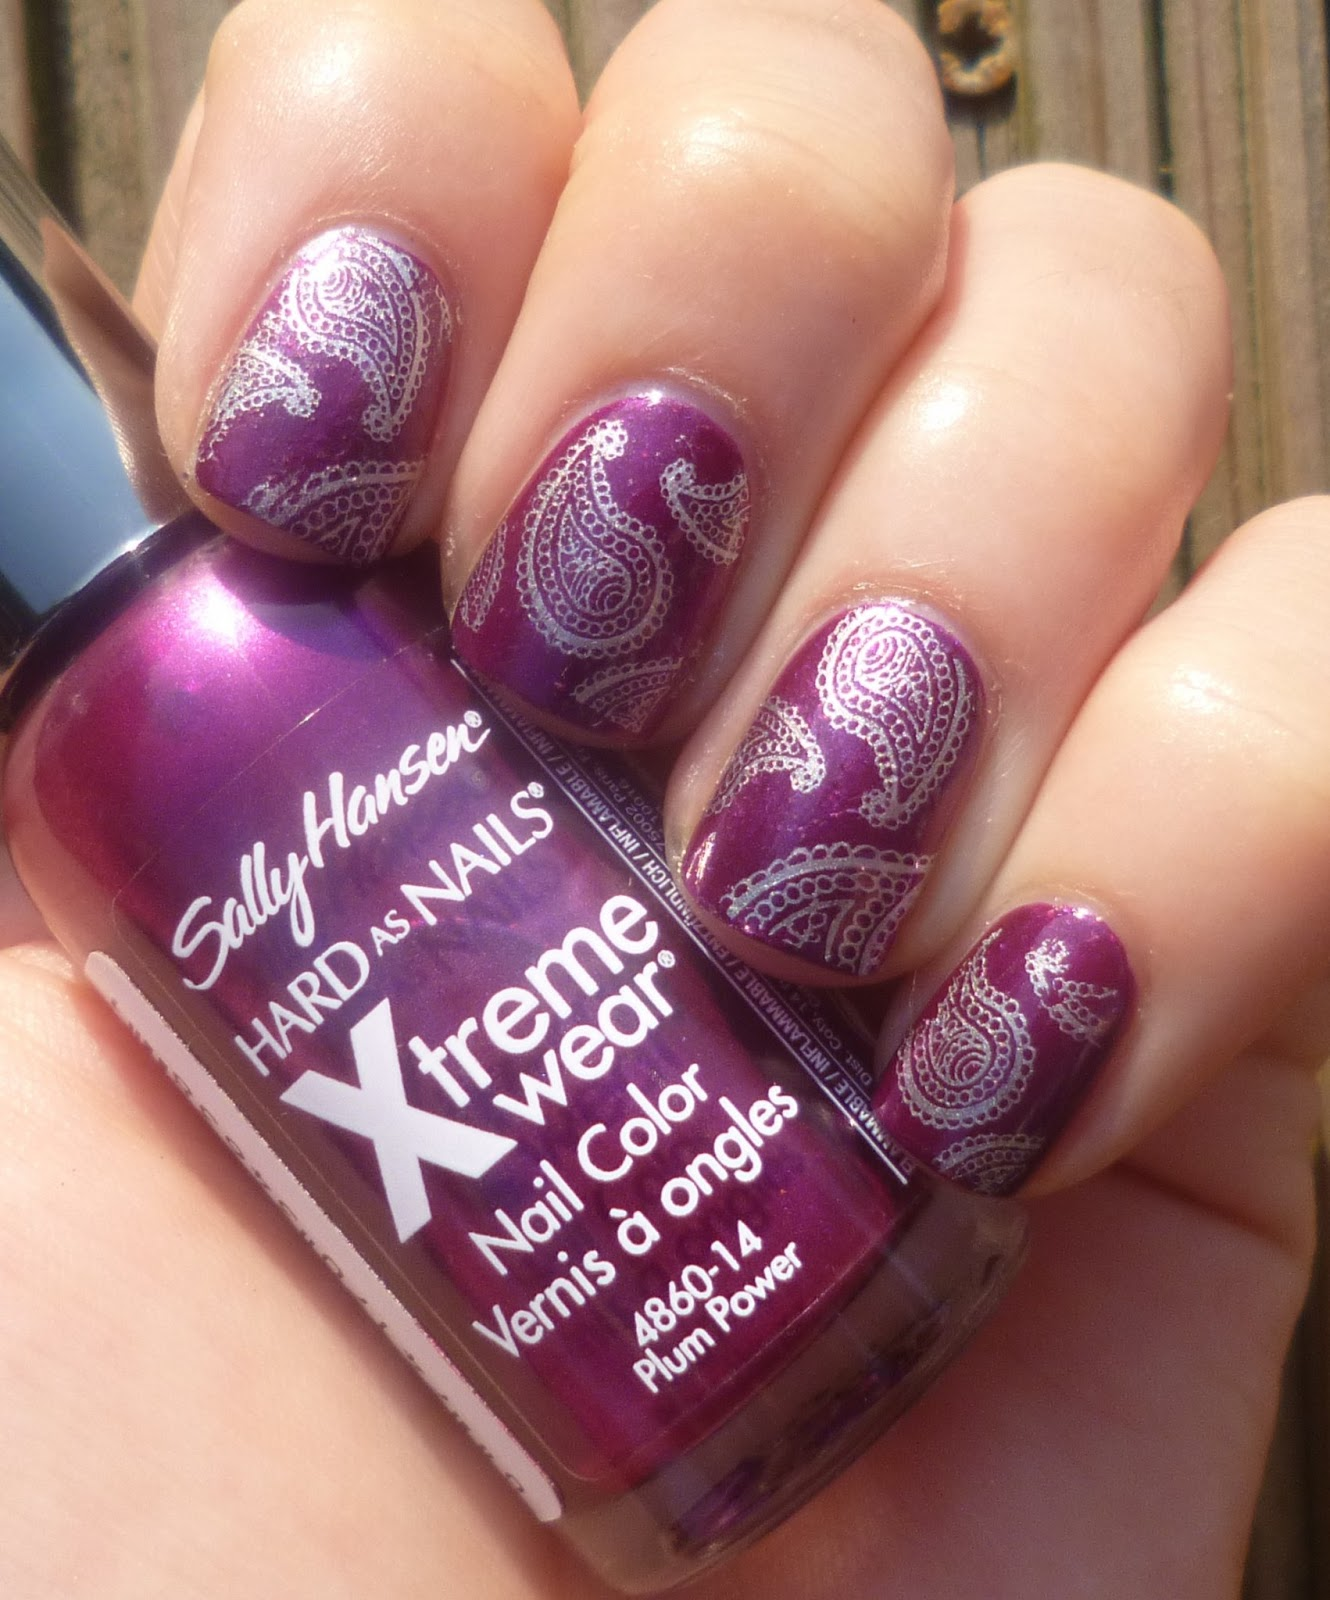 Lou is Perfectly Polished: Purple nails with Paisley